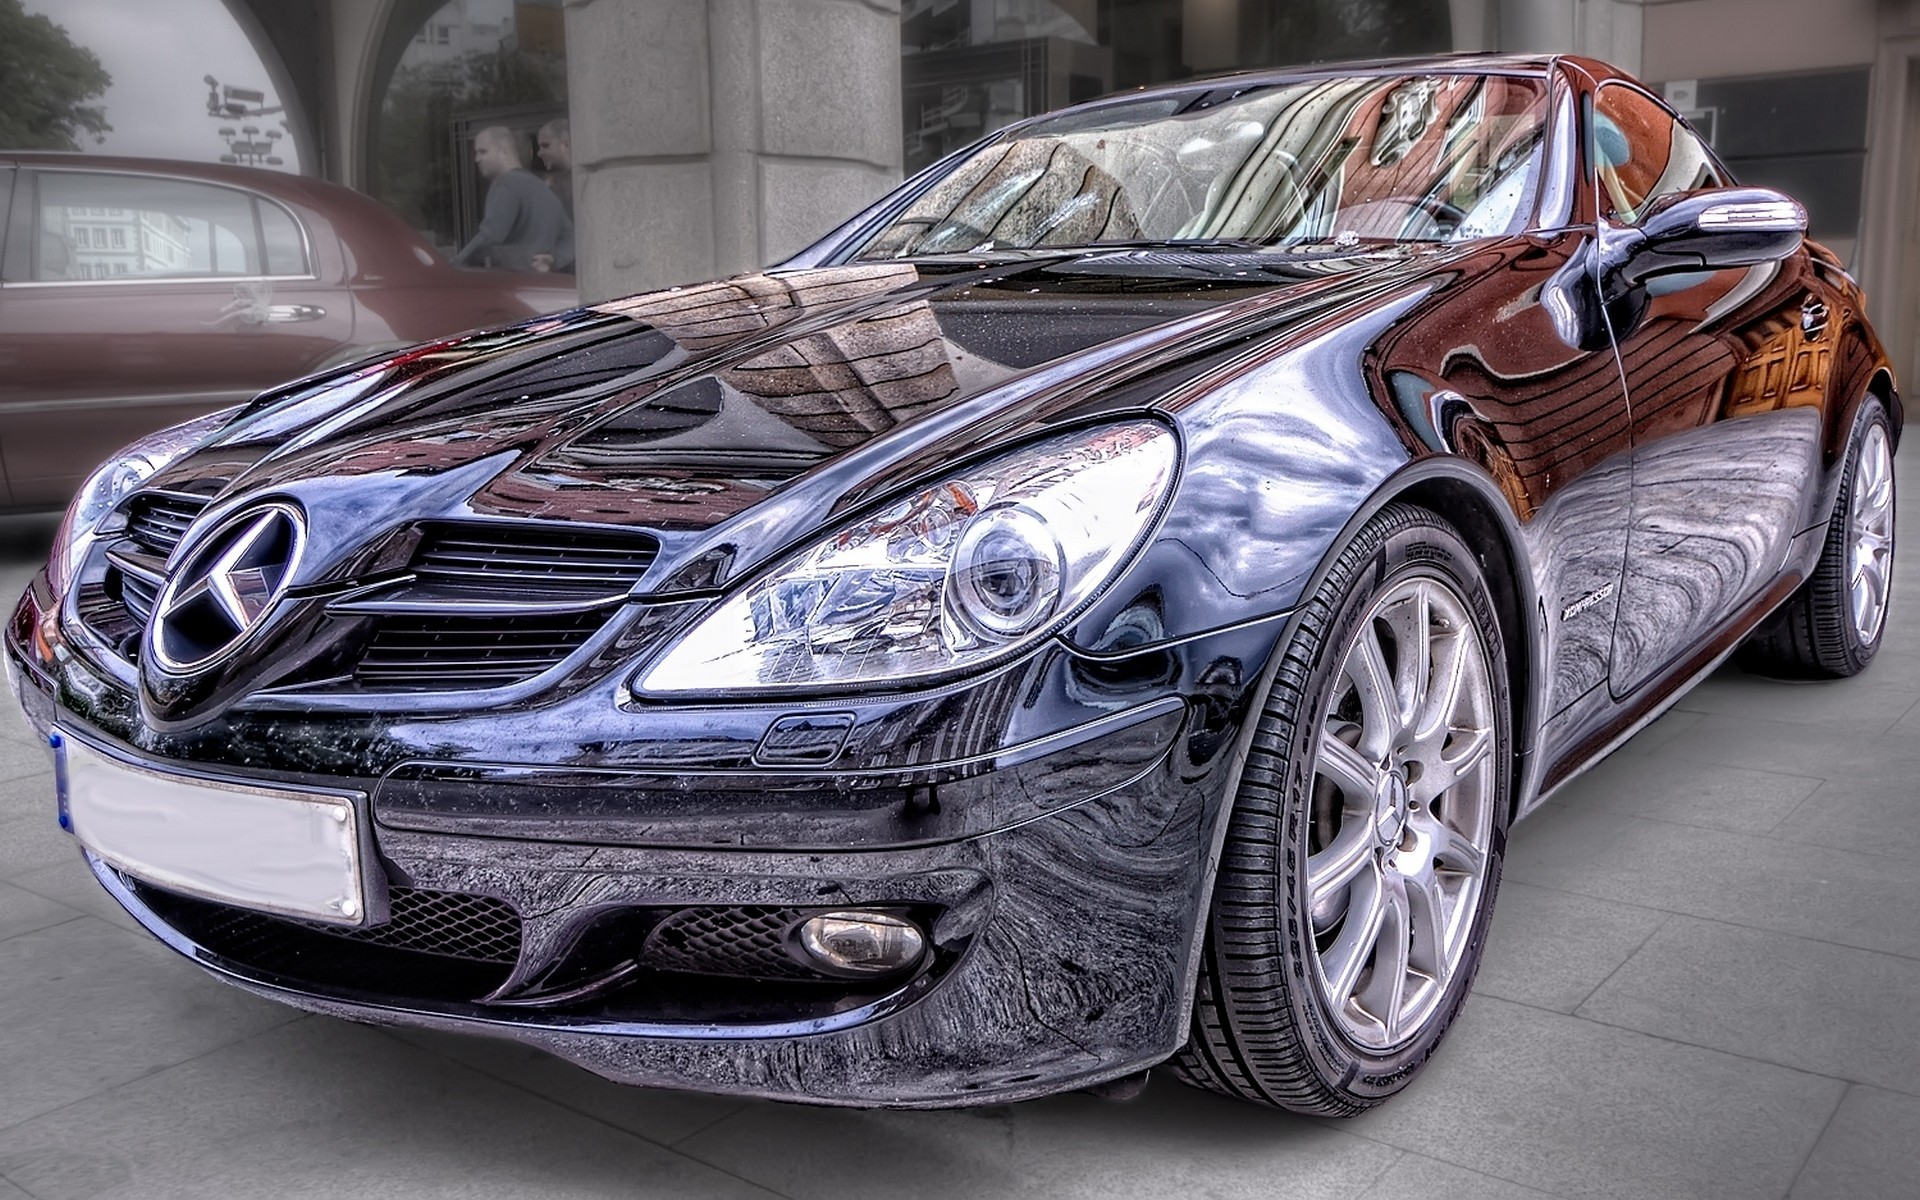 cars HDR Photography Mercedes-Benz HD Wallpaper